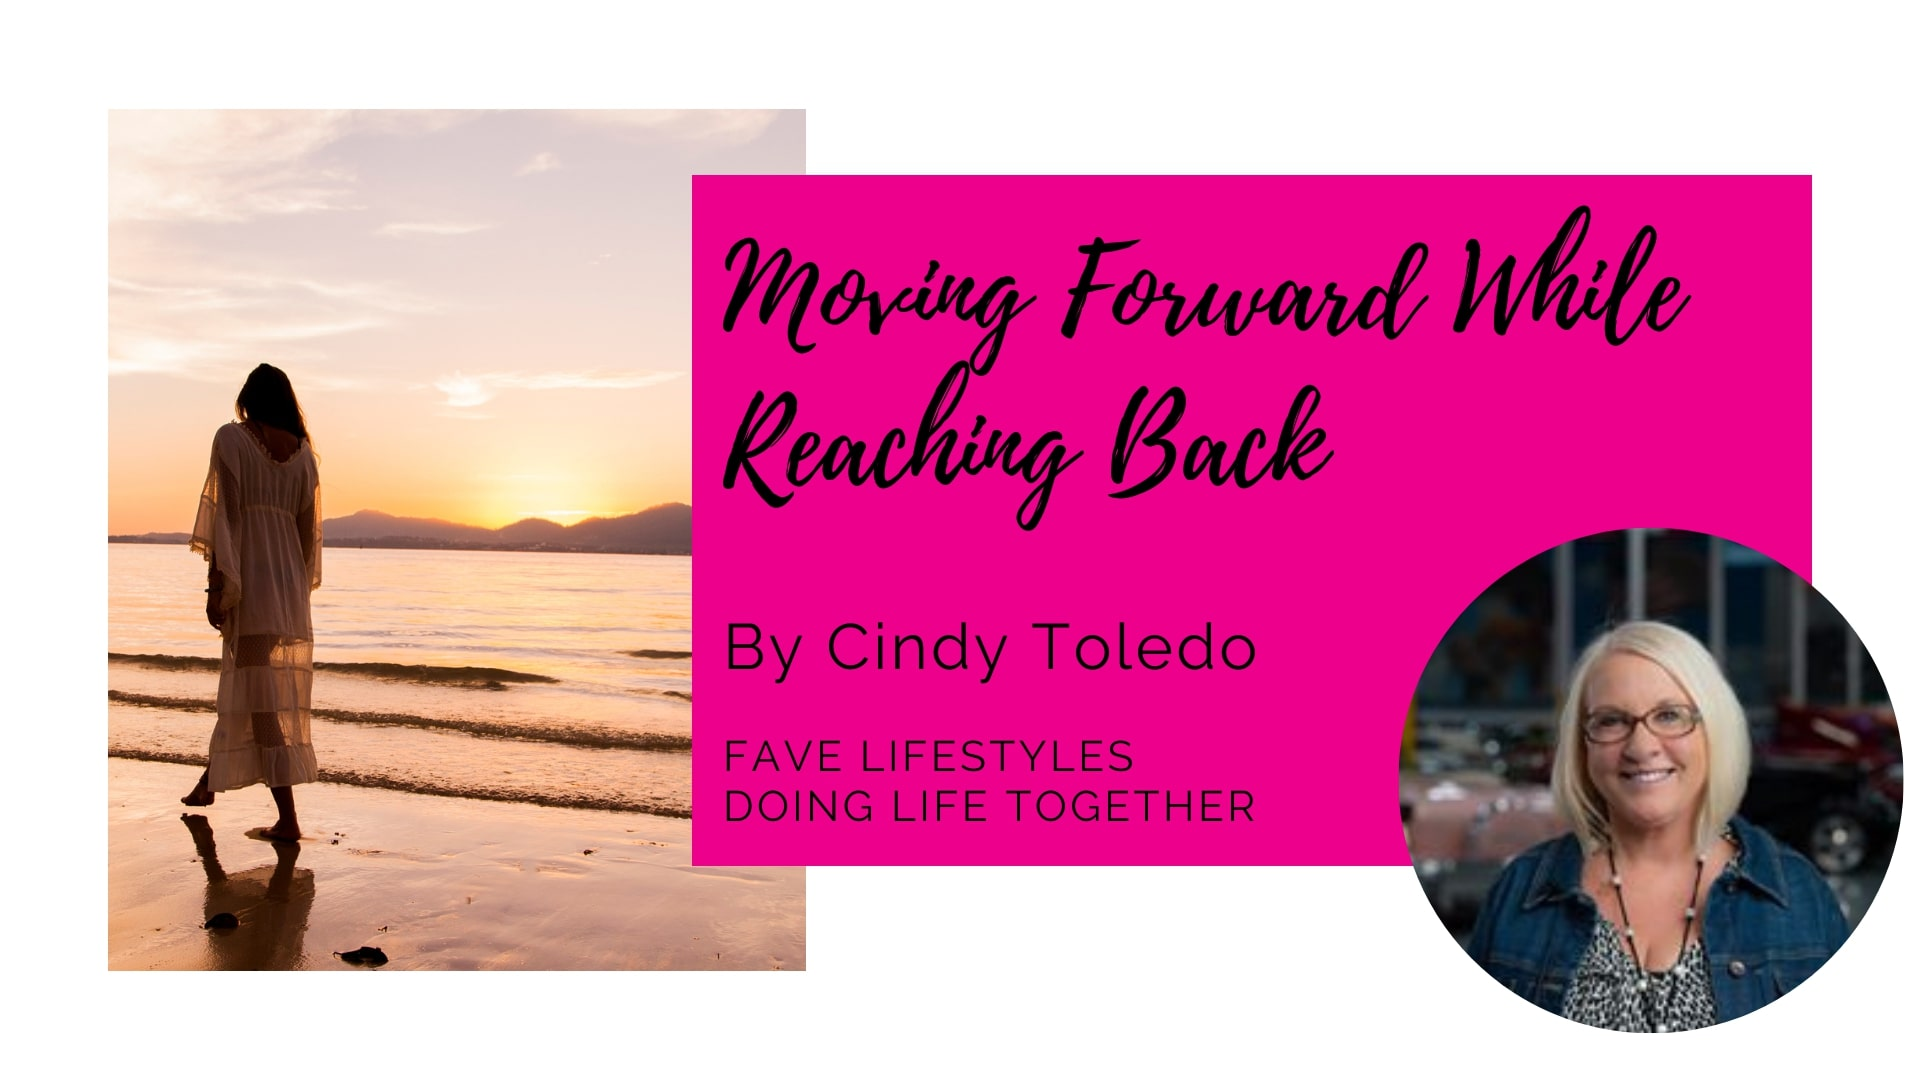 Moving Forward While Reaching Back